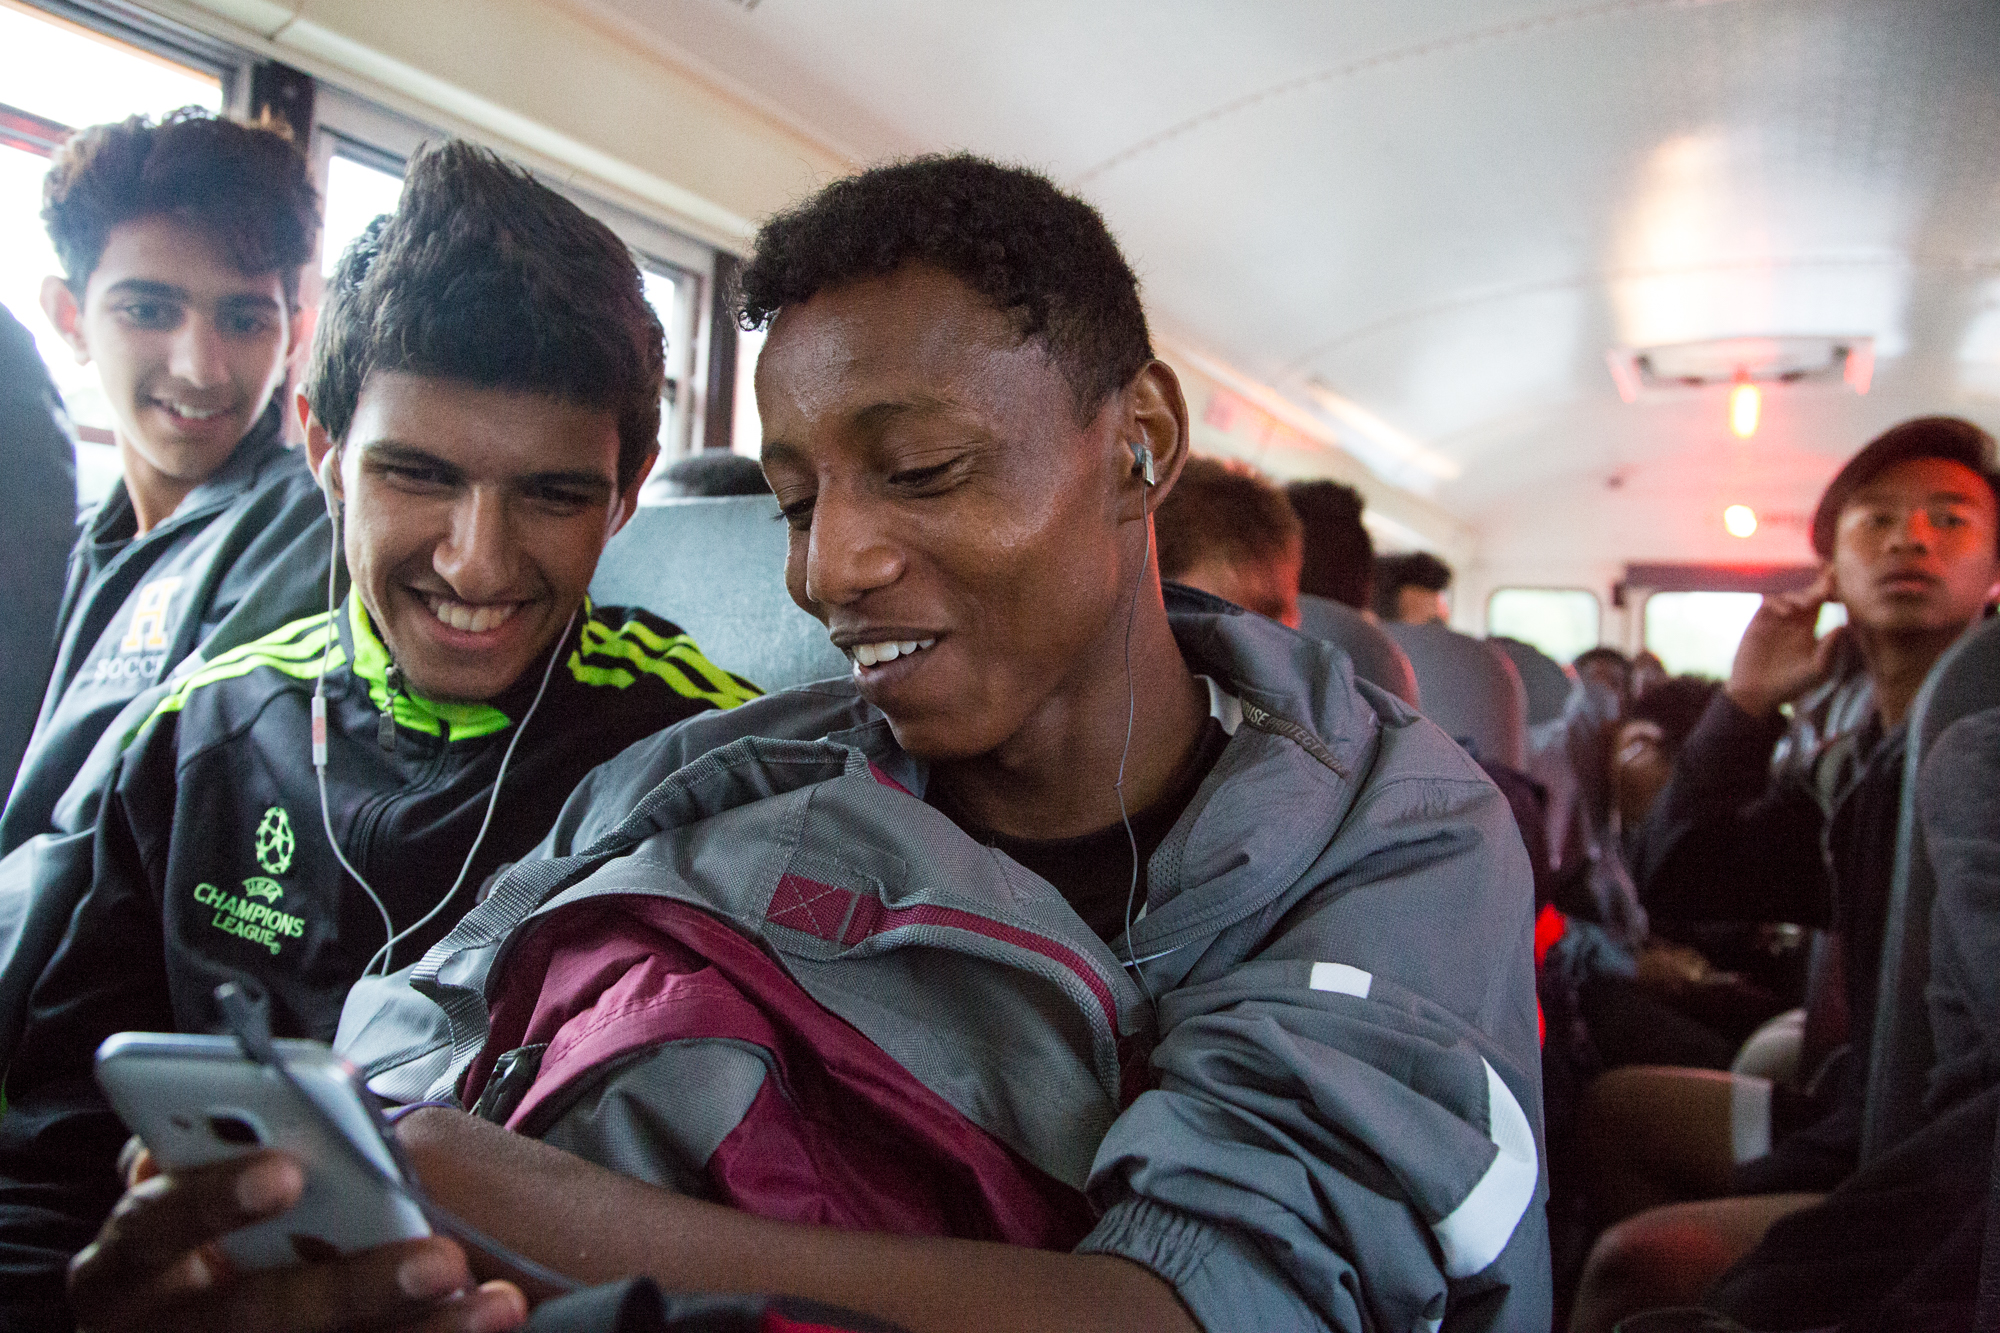 Ramadan Saad, from Somalia shows Sajad Modric, a junior varsity player a song on his phone. Ramadan doesn't speak English and hence Ahmed (extreme left) mostly helps with translating during the game and also when he needs medical assistance.